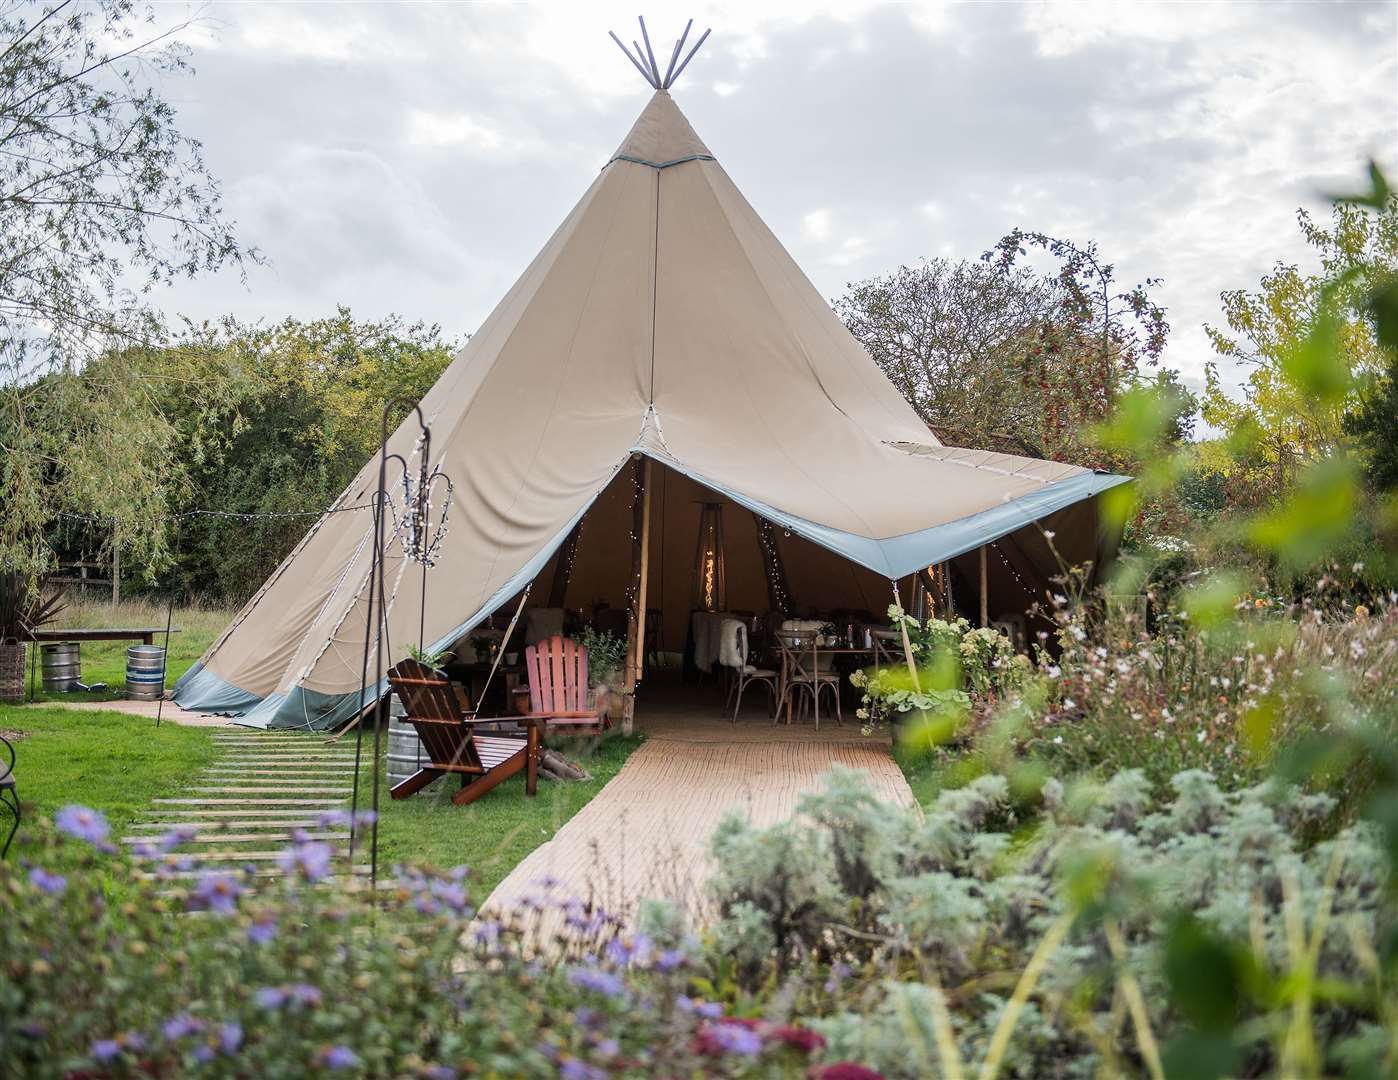 The tipis have now been installed in other pubs